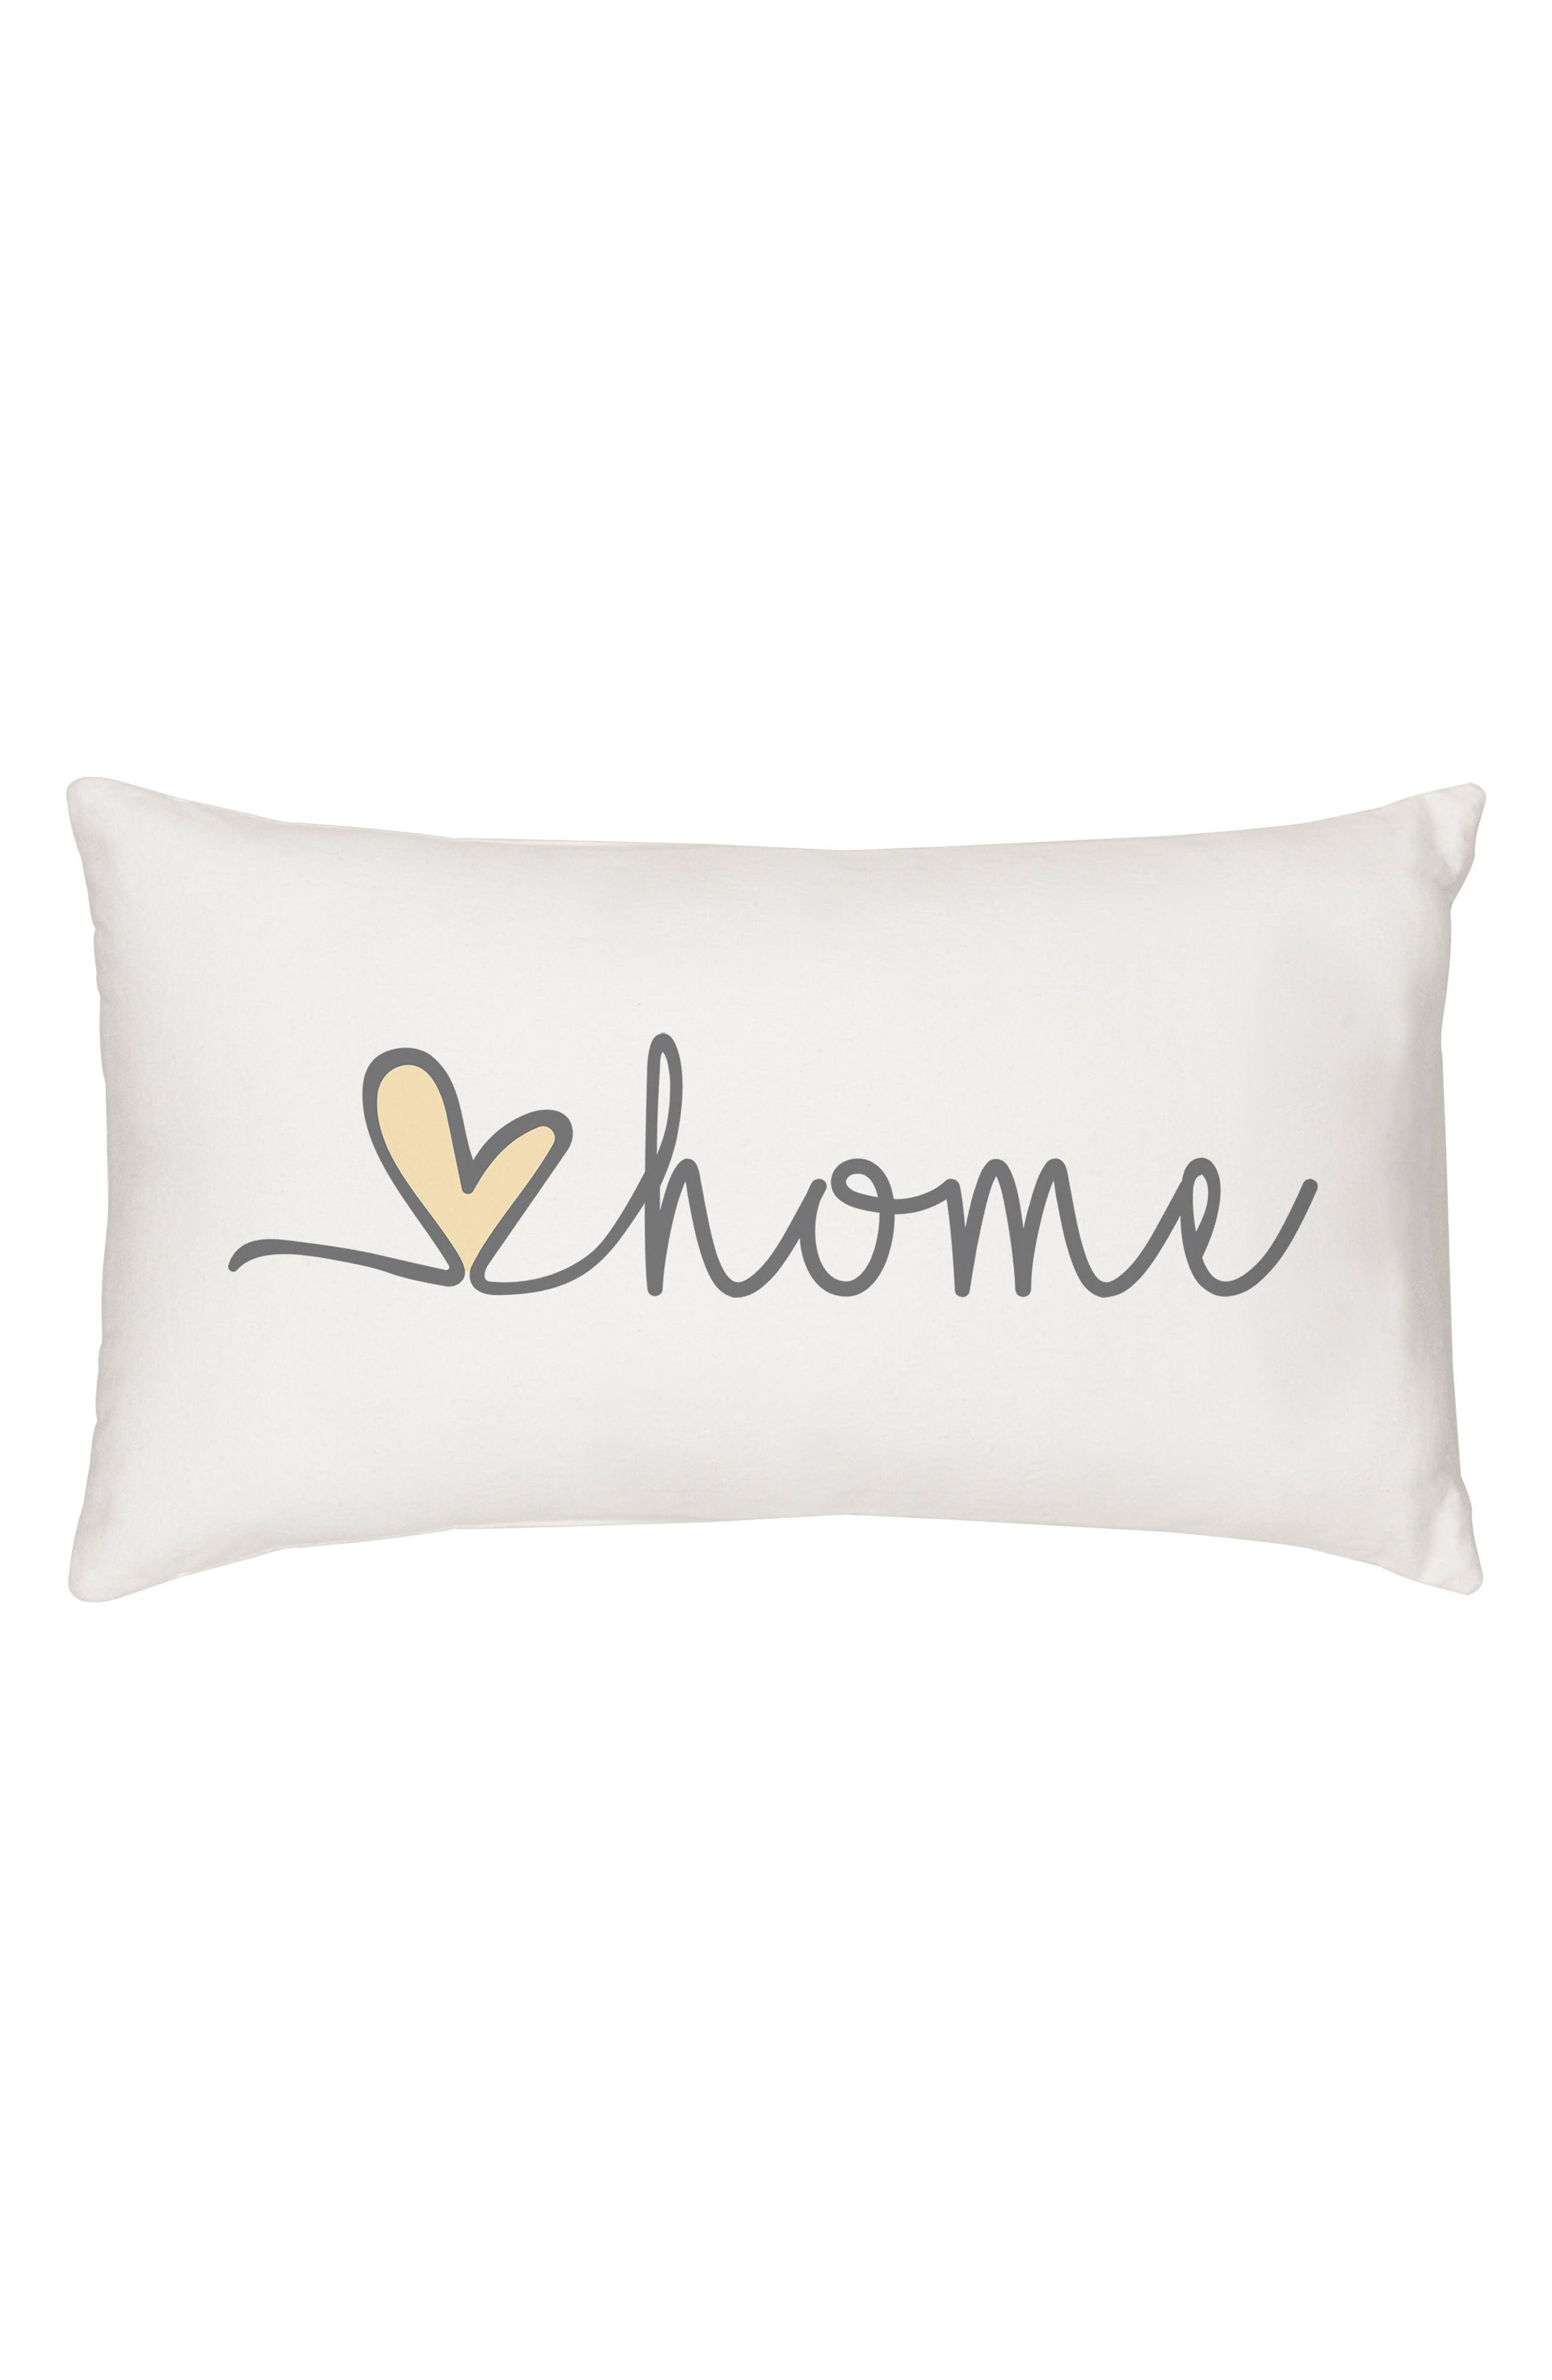 Cathy's Concepts Love Home Lumbar Accent Pillow